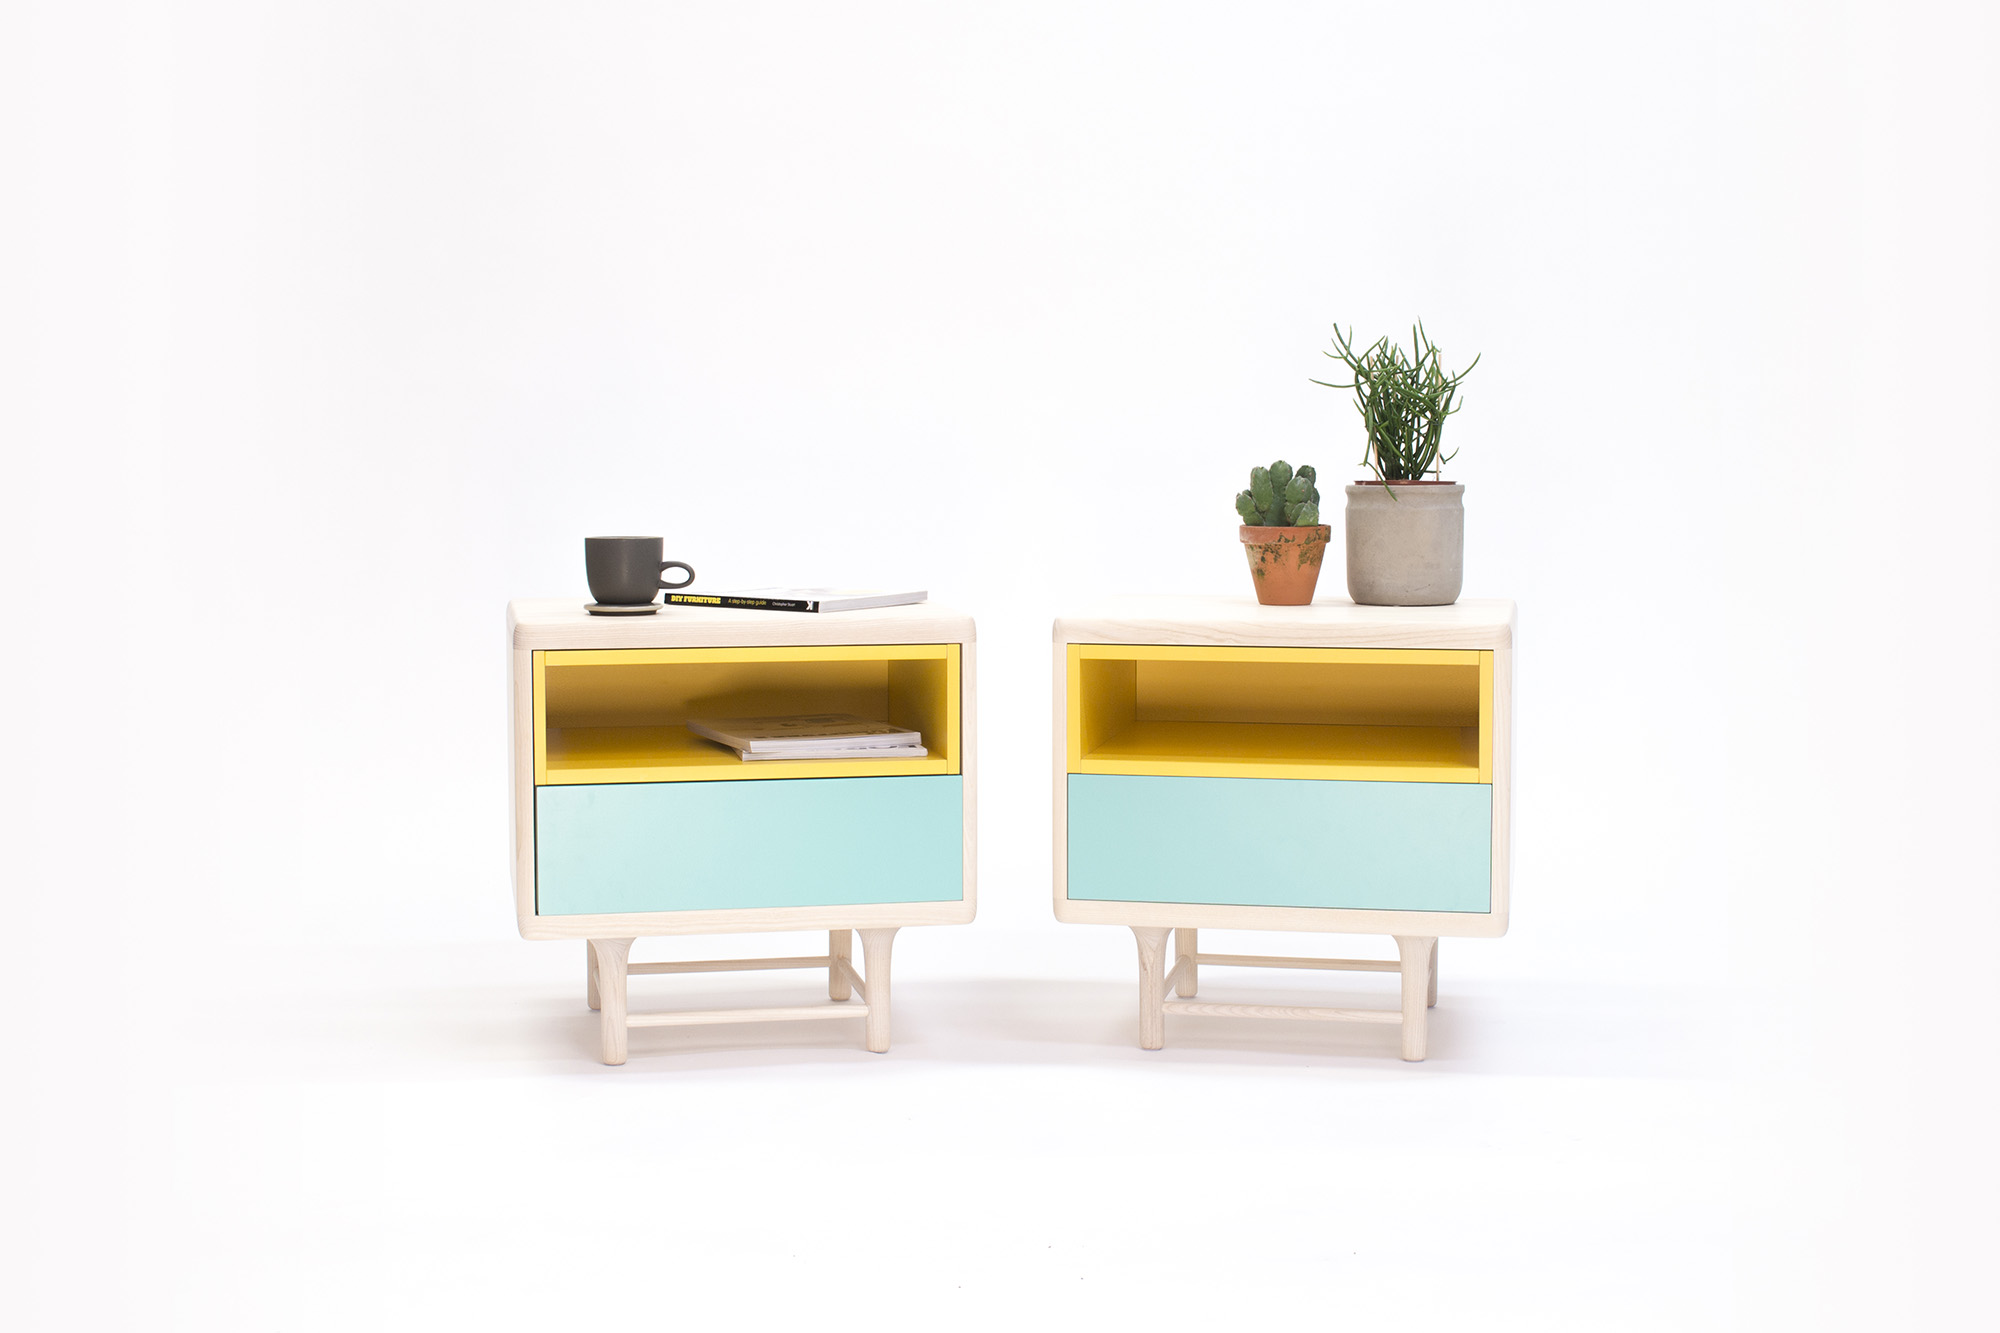 Minimal scandinavian furniture by designer carlos jim nez for Scandinavian design furniture